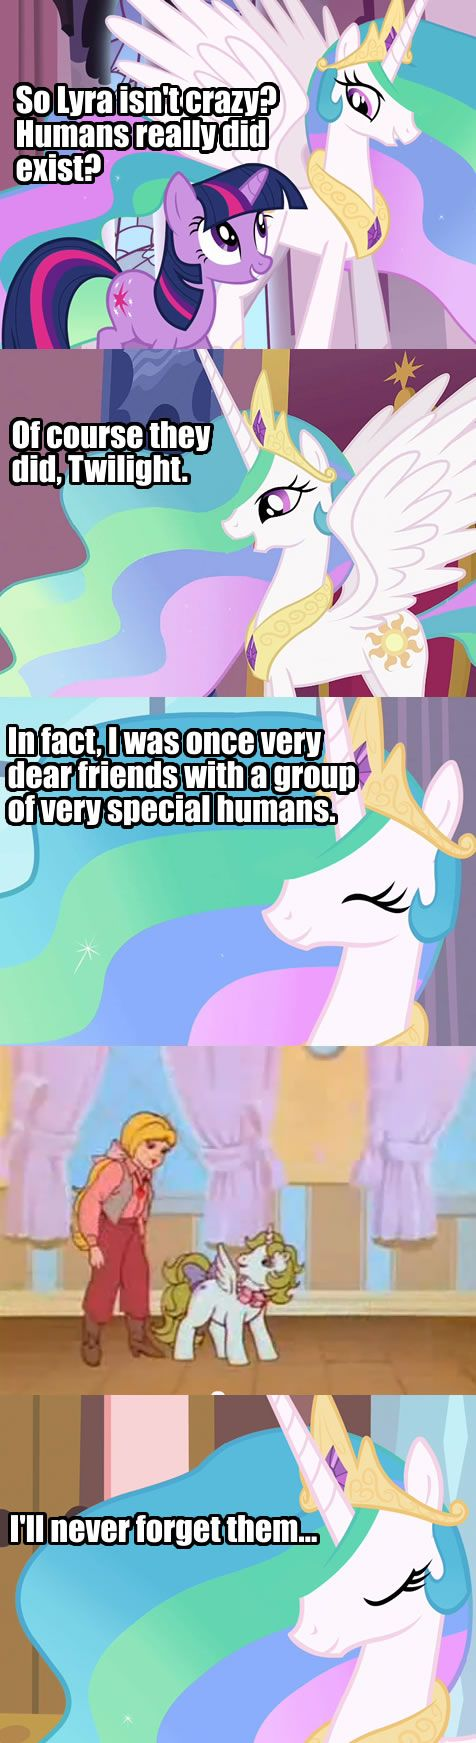 #214996 - alicorn, animation error, comic, g1, insane fan theory, megan, megan williams, princess celestia, princess surprise, safe, surprise, text, twilight sparkle - Derpibooru - My Little Pony: Friendship is Magic Imageboard